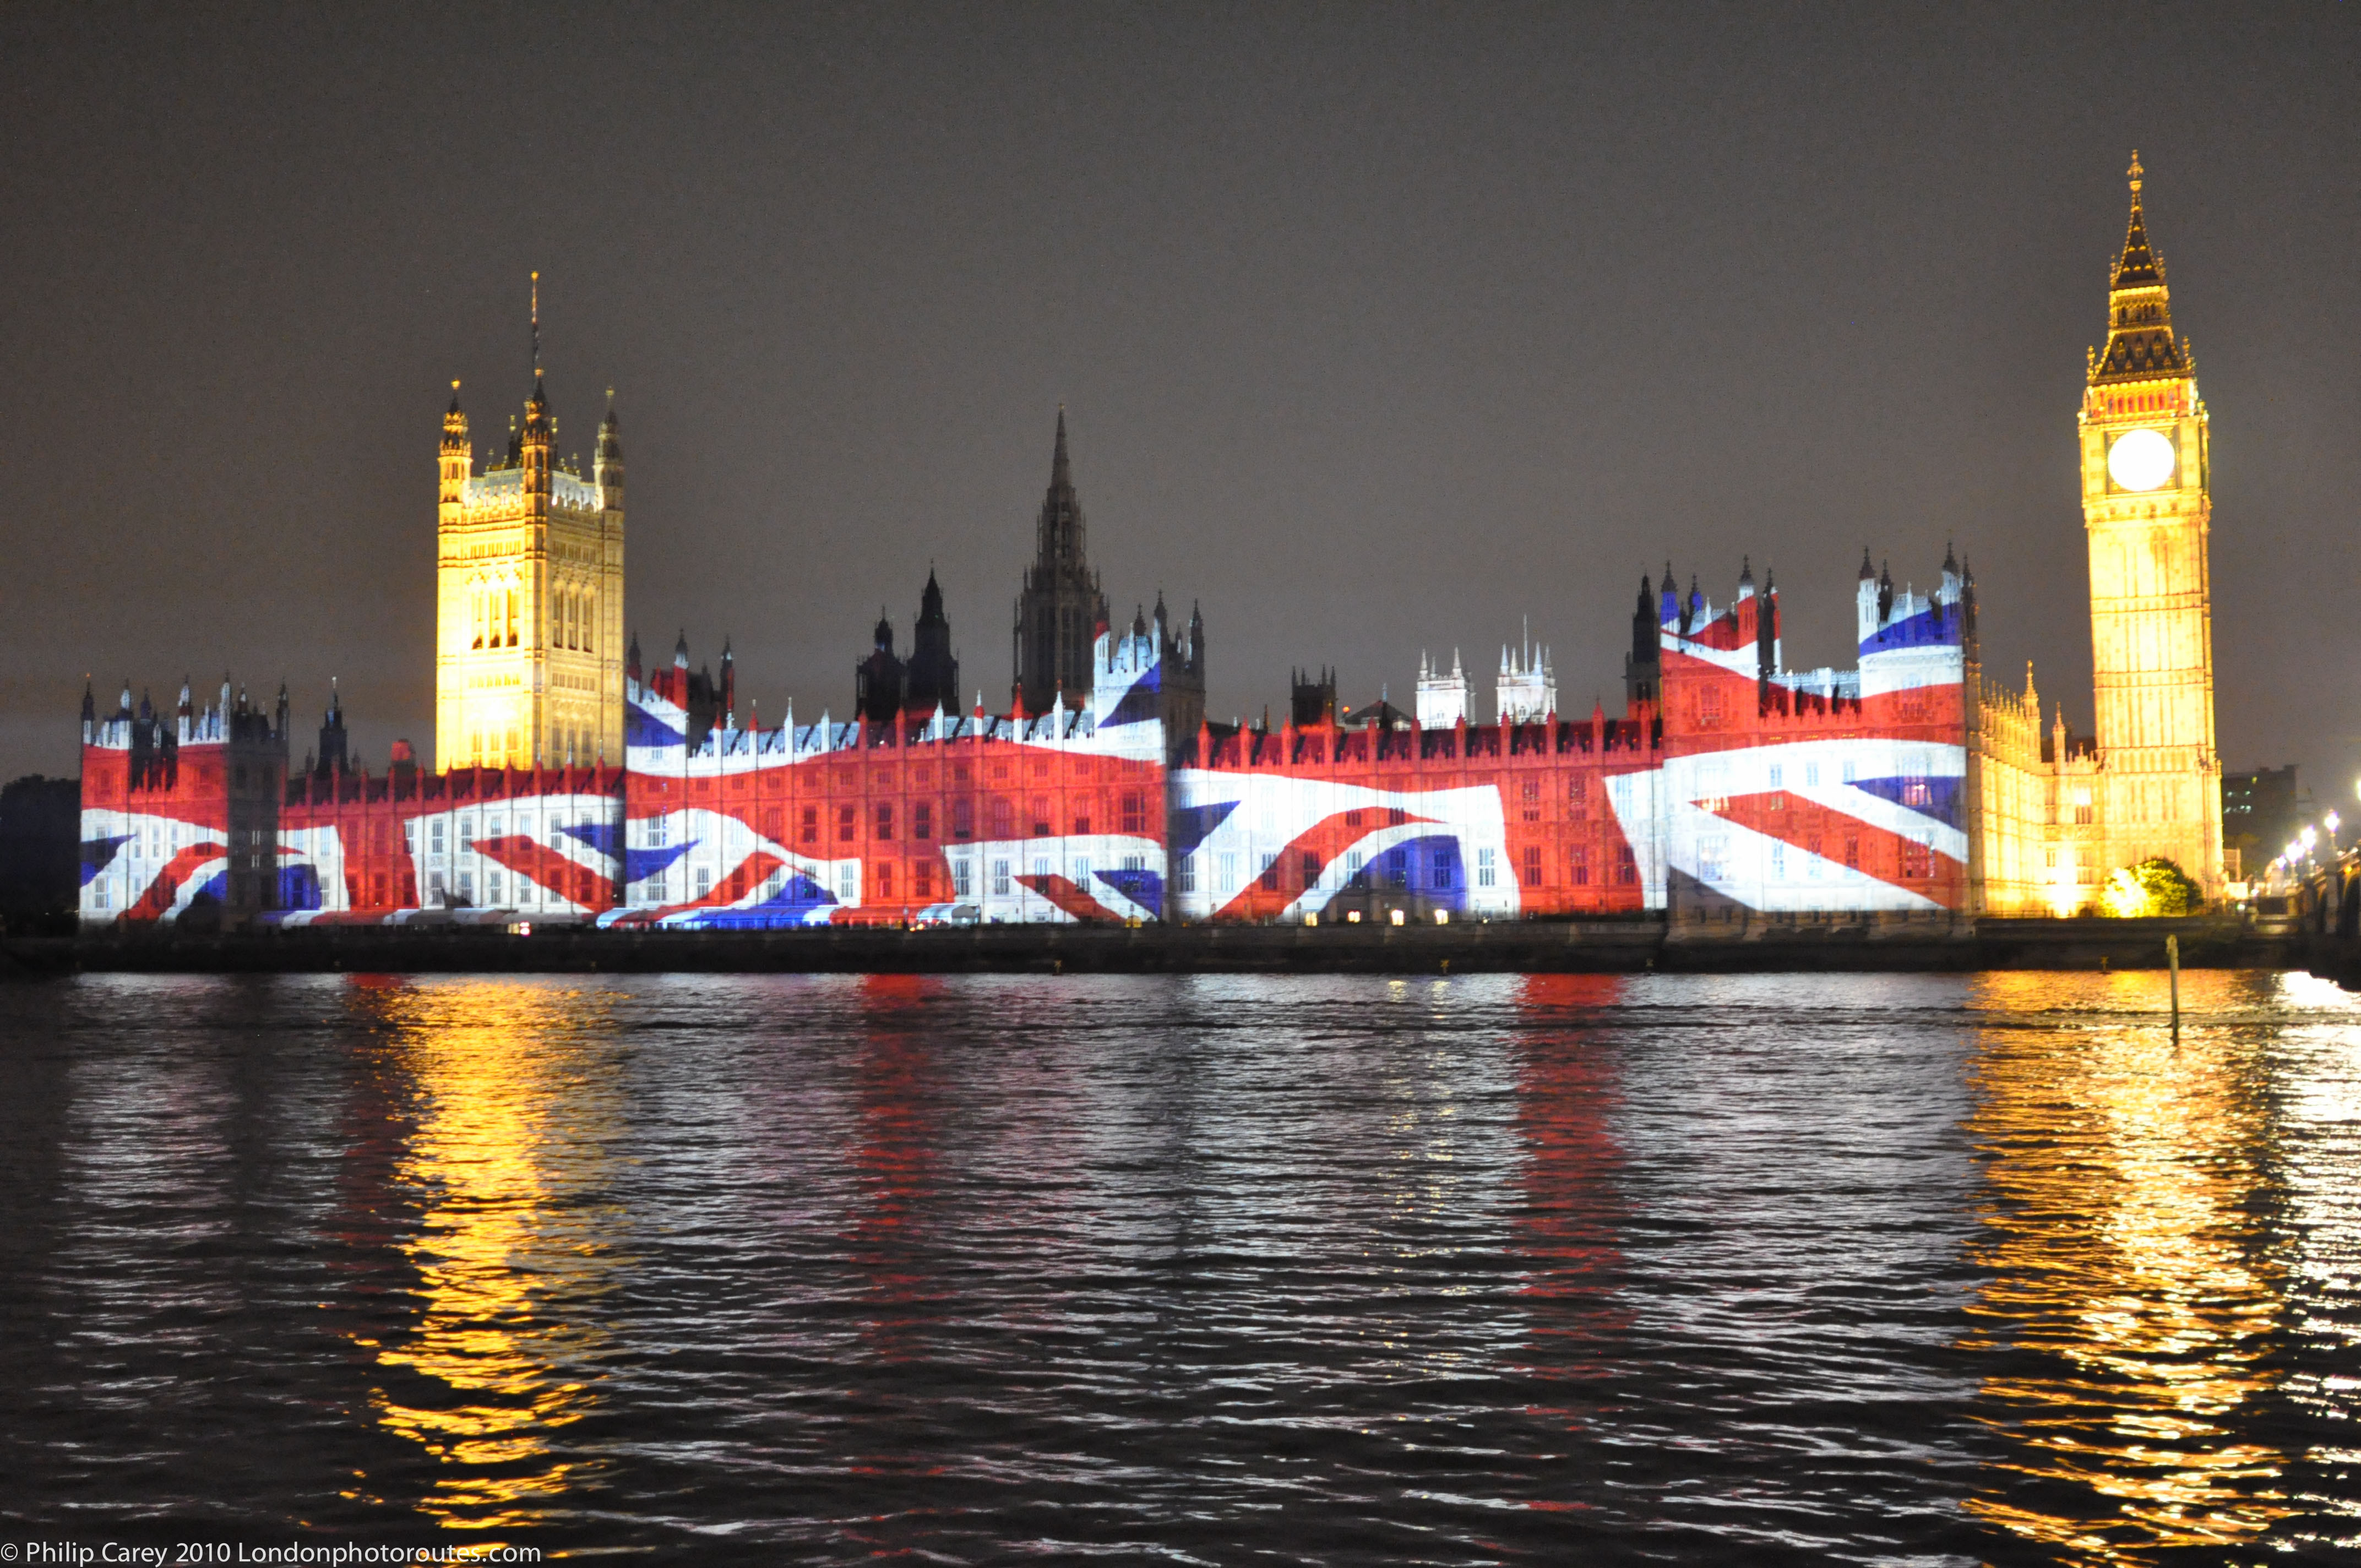 Projected onto houses of parliament